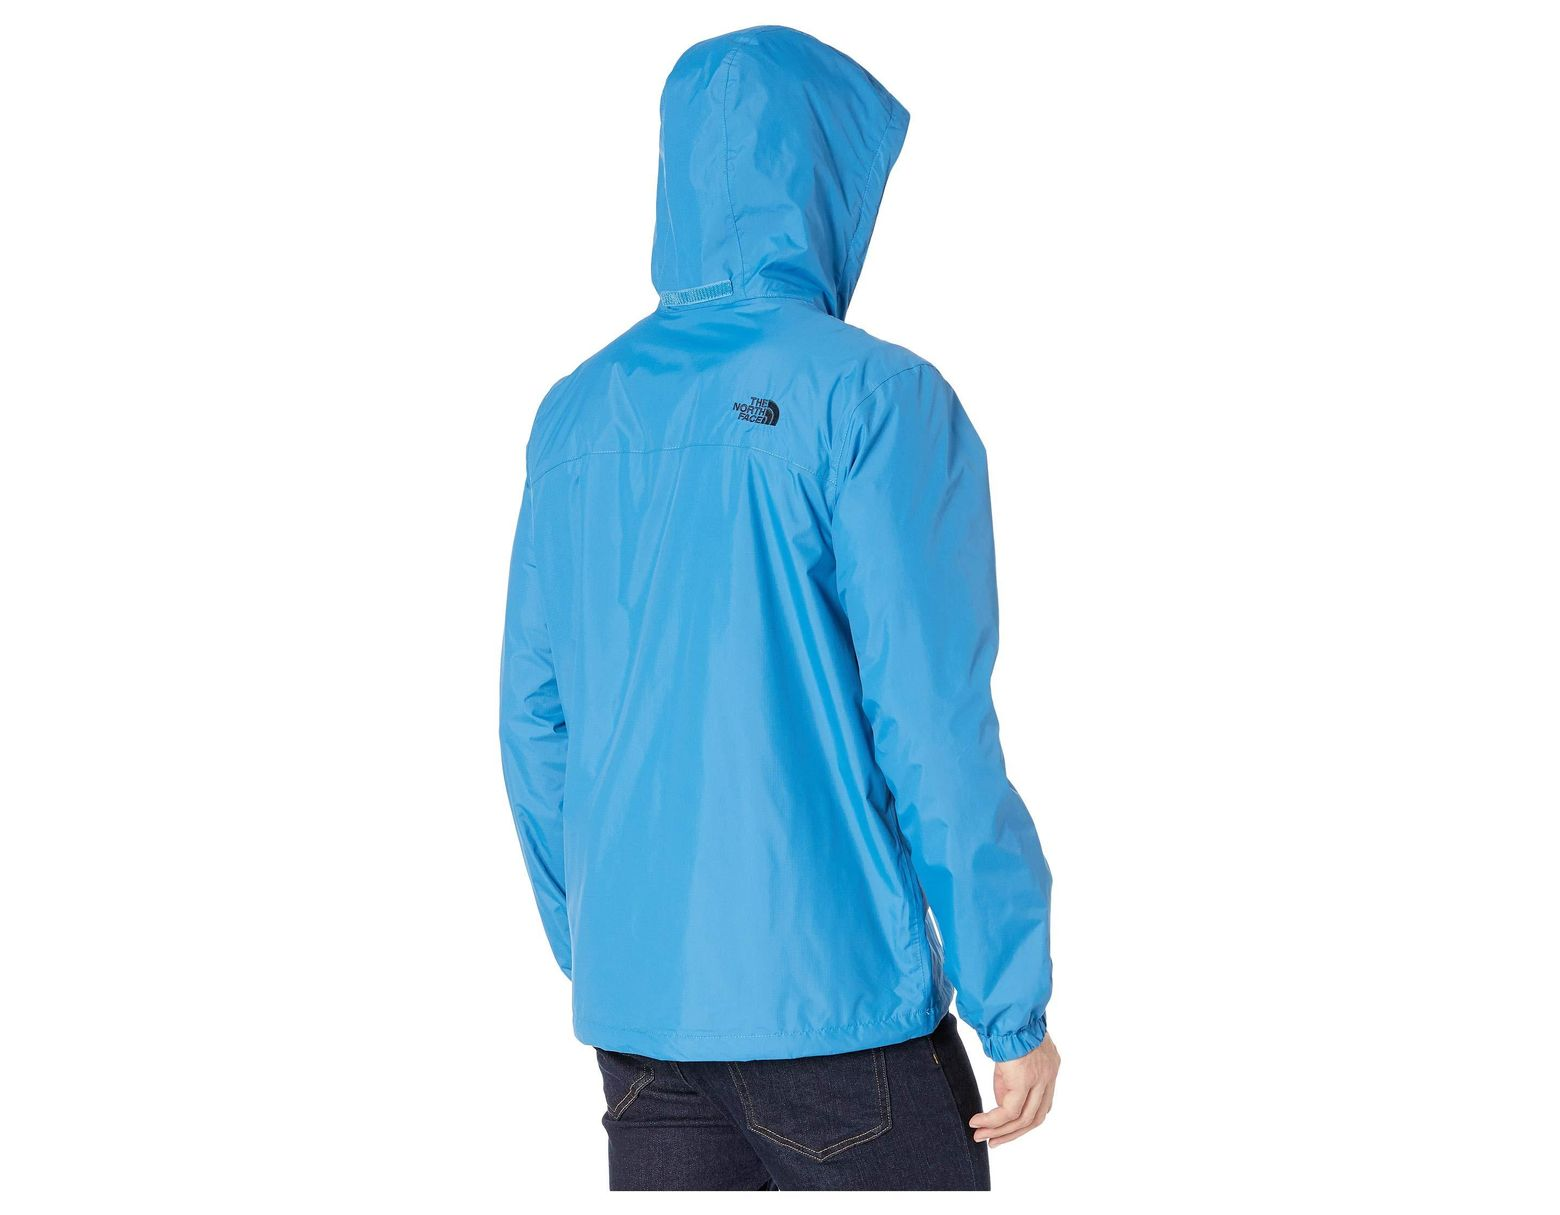 f2a1c8336 The North Face Resolve 2 Jacket in Blue for Men - Save 40% - Lyst